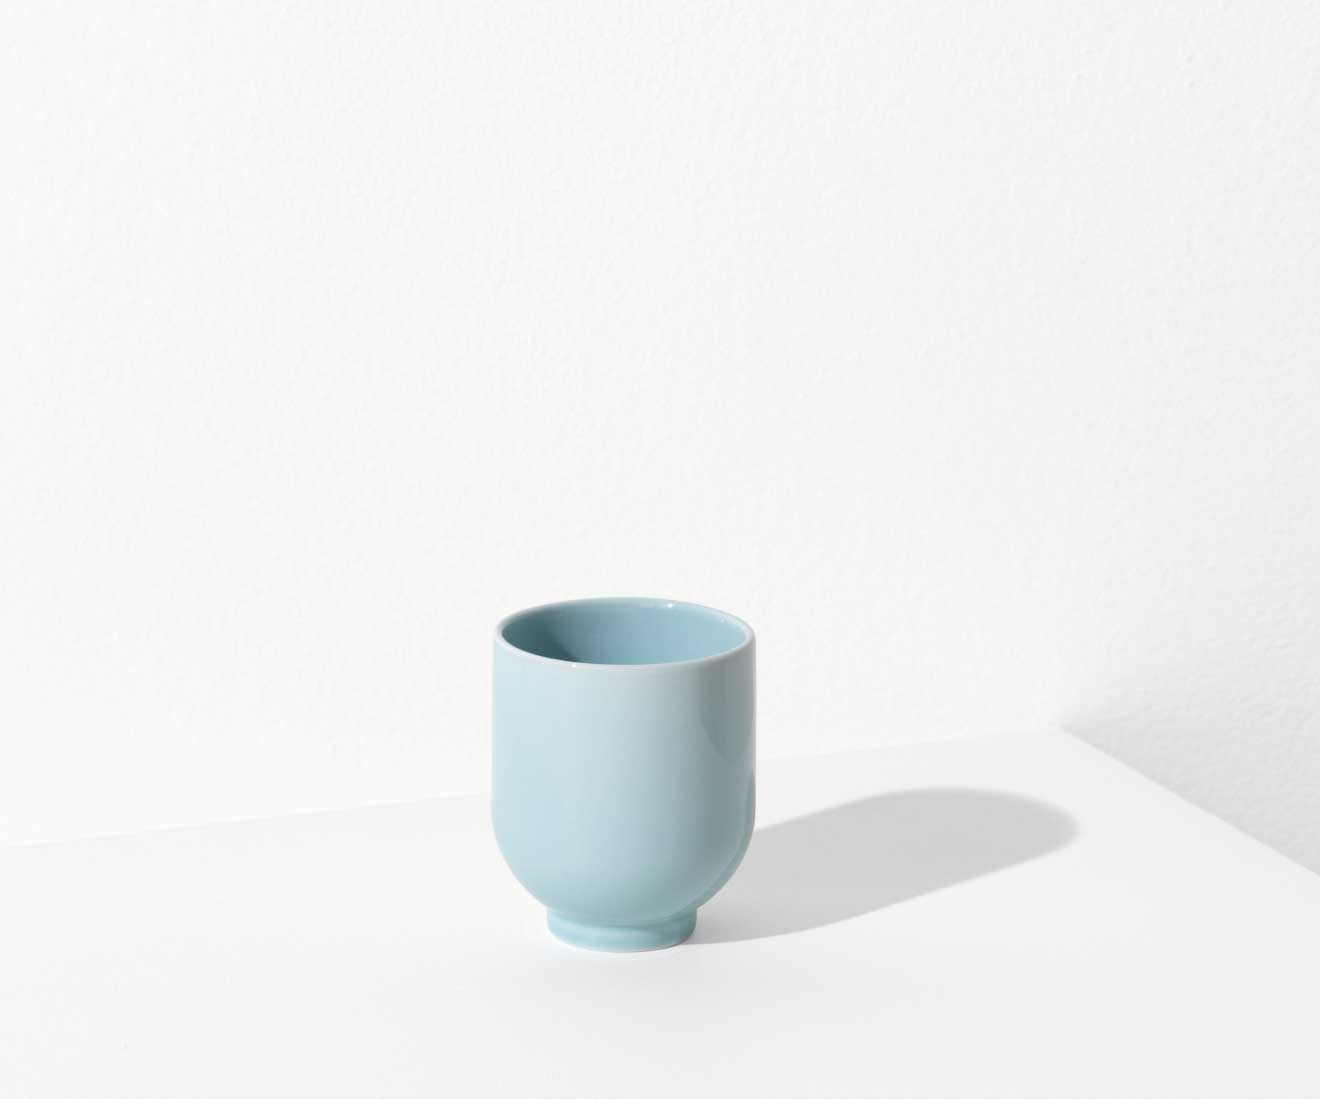 Motarasu Products - Yoko mug in light blue by Stilleben